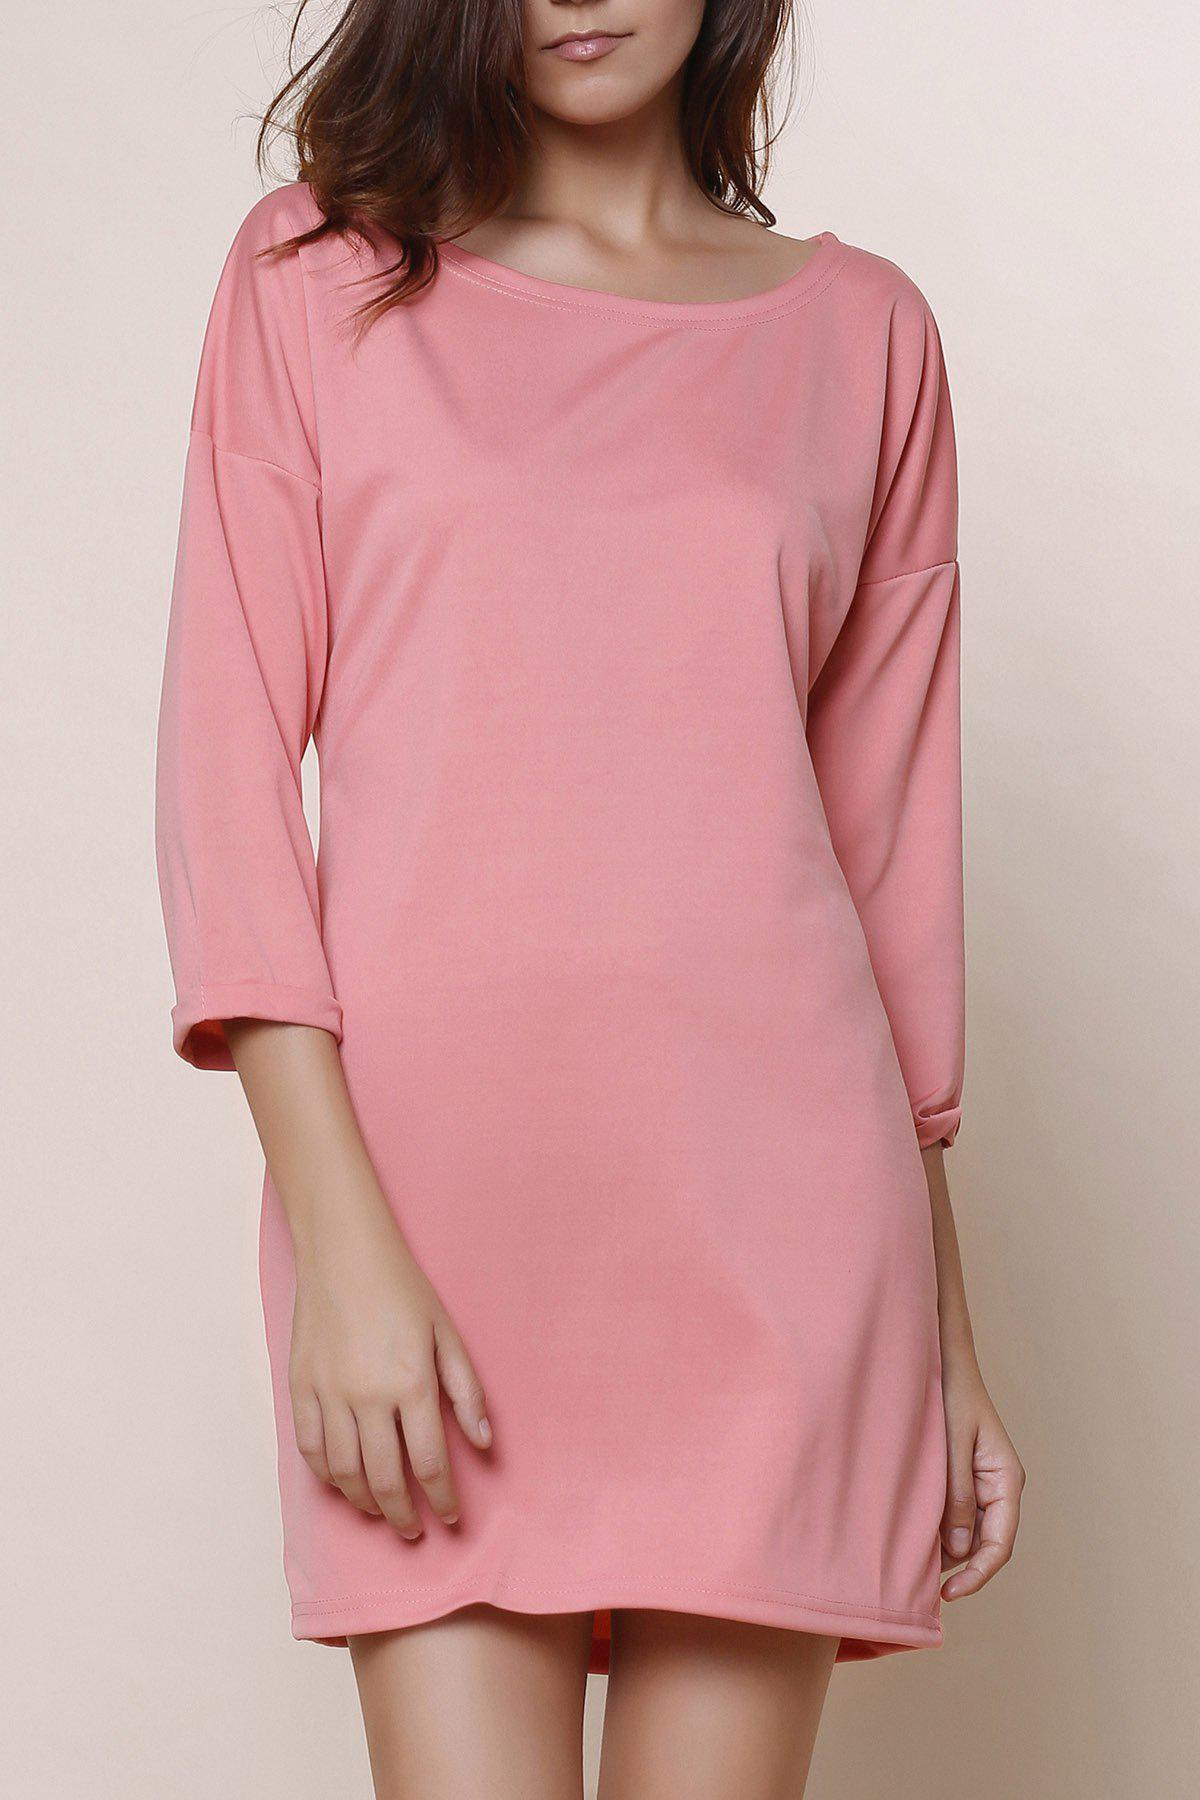 Fashionable Solid Color Scoop Neck Short Sleeve Dress - PINK S